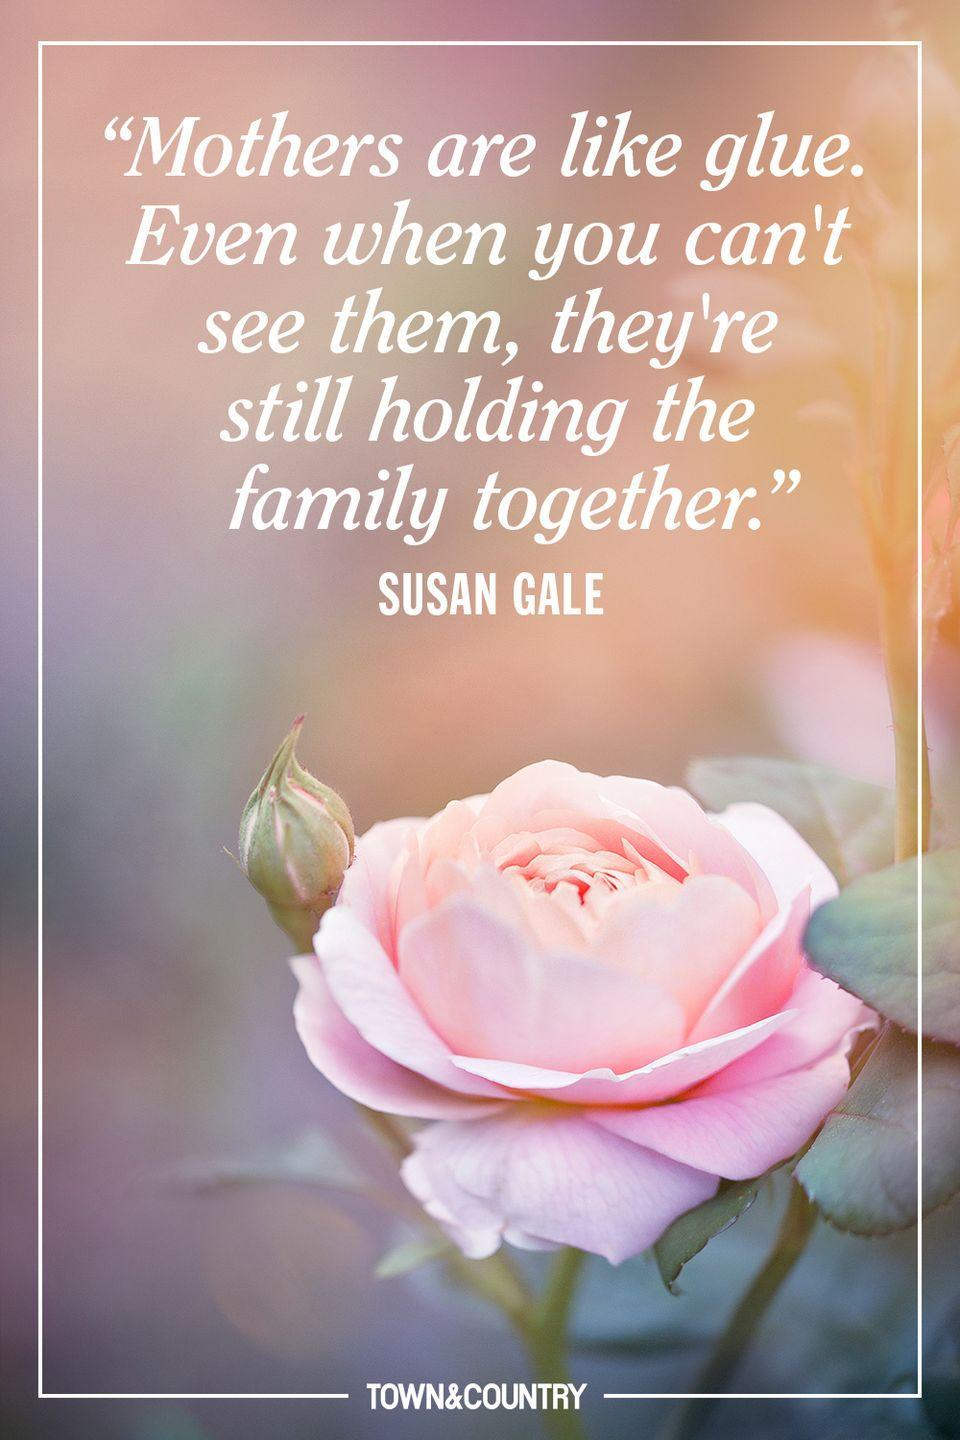 """<p>""""Mothers are like glue. Even when you can't see them, they're still holding the family together.""""</p><p>- Susan Gale</p>"""